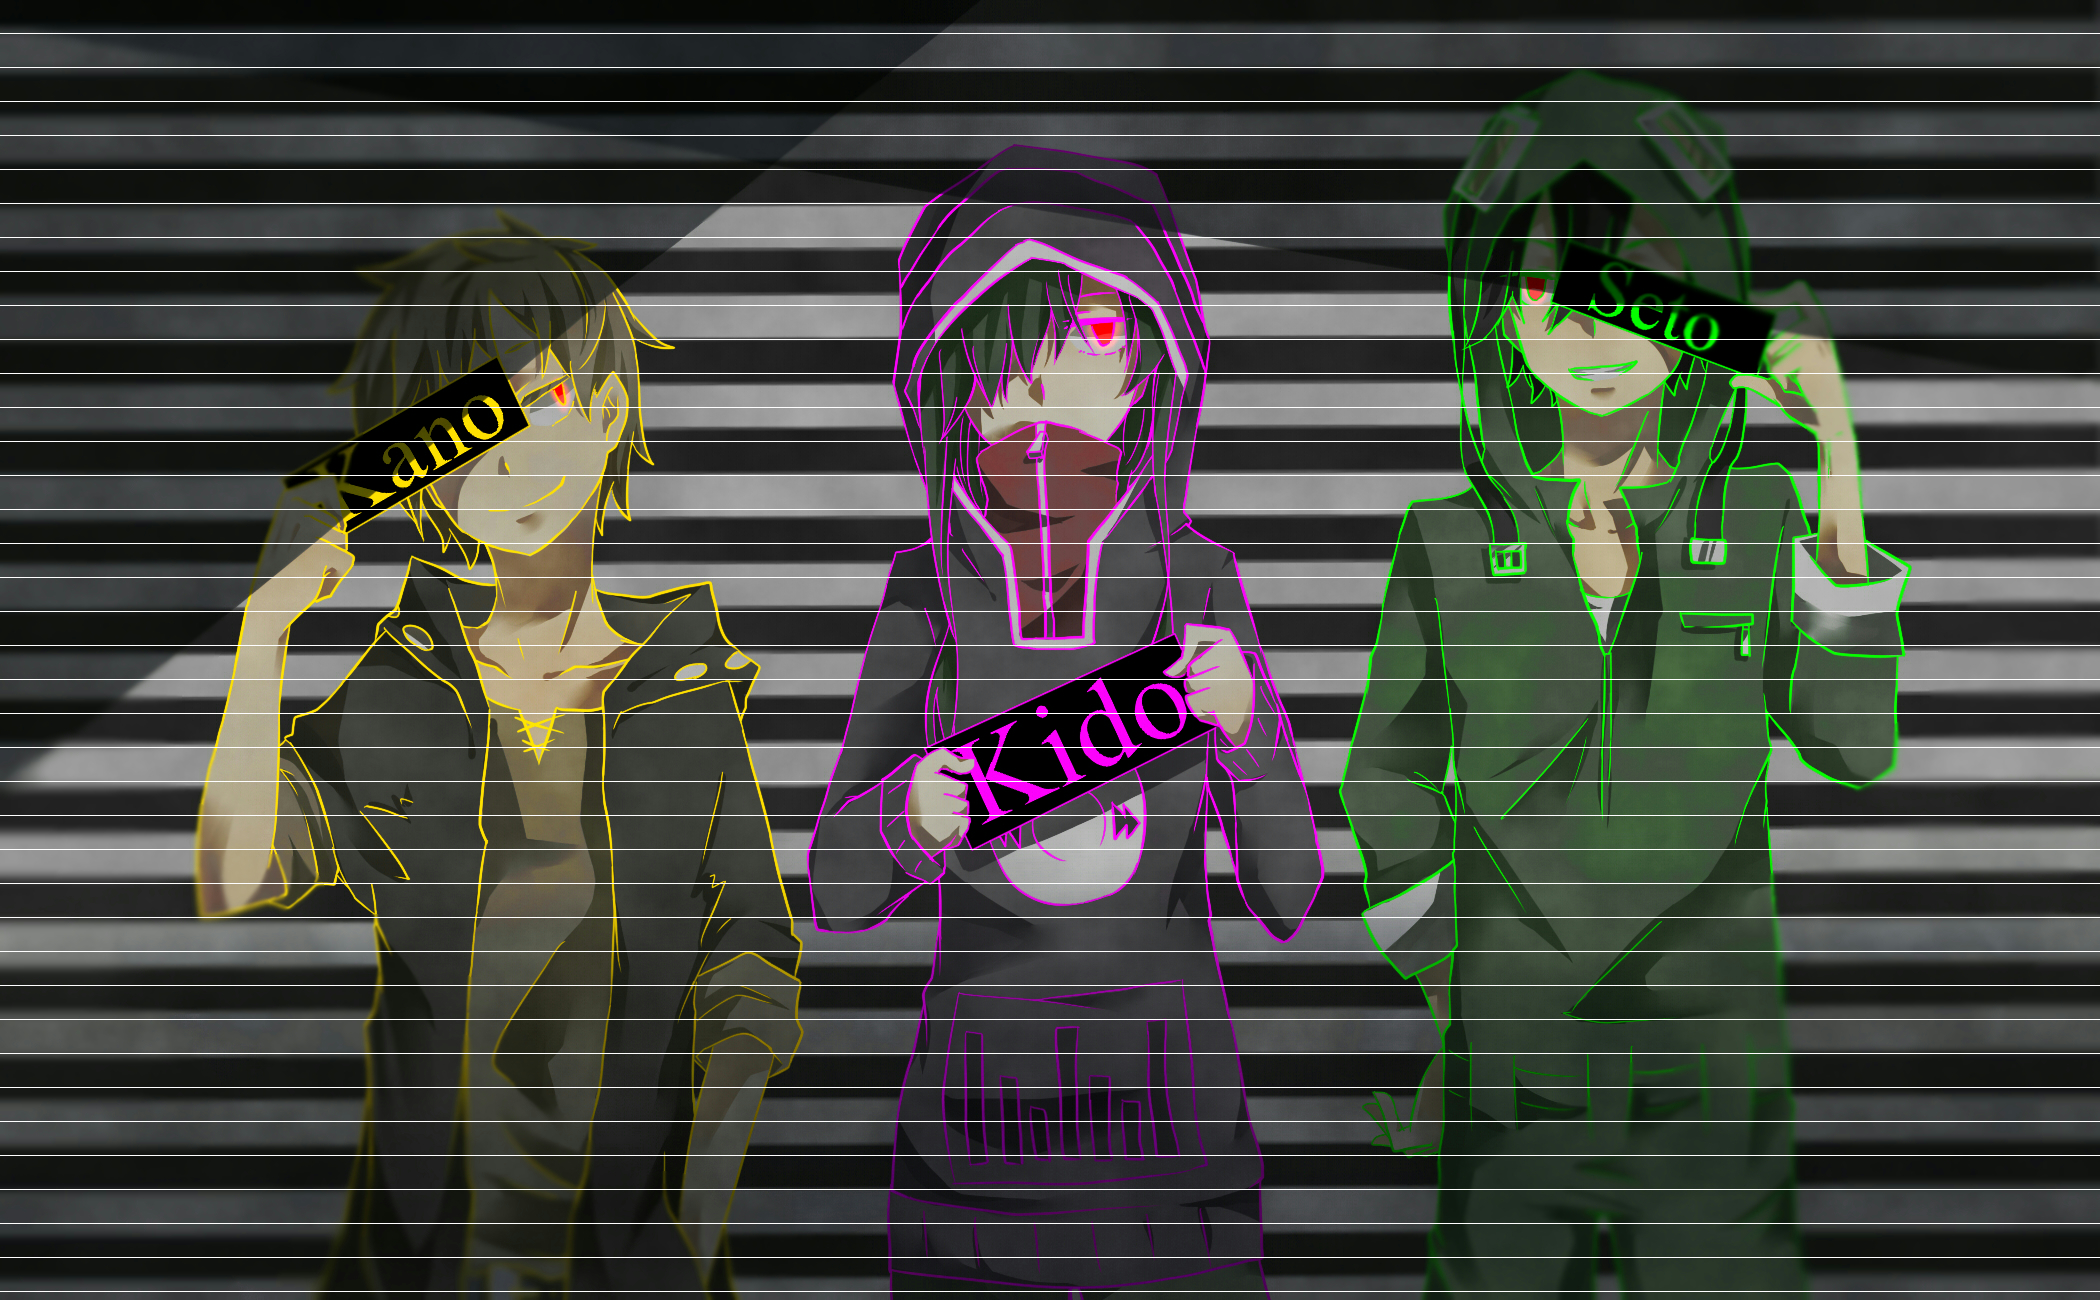 Free Download Kagepro Wallpaper Kagerou Project Photo